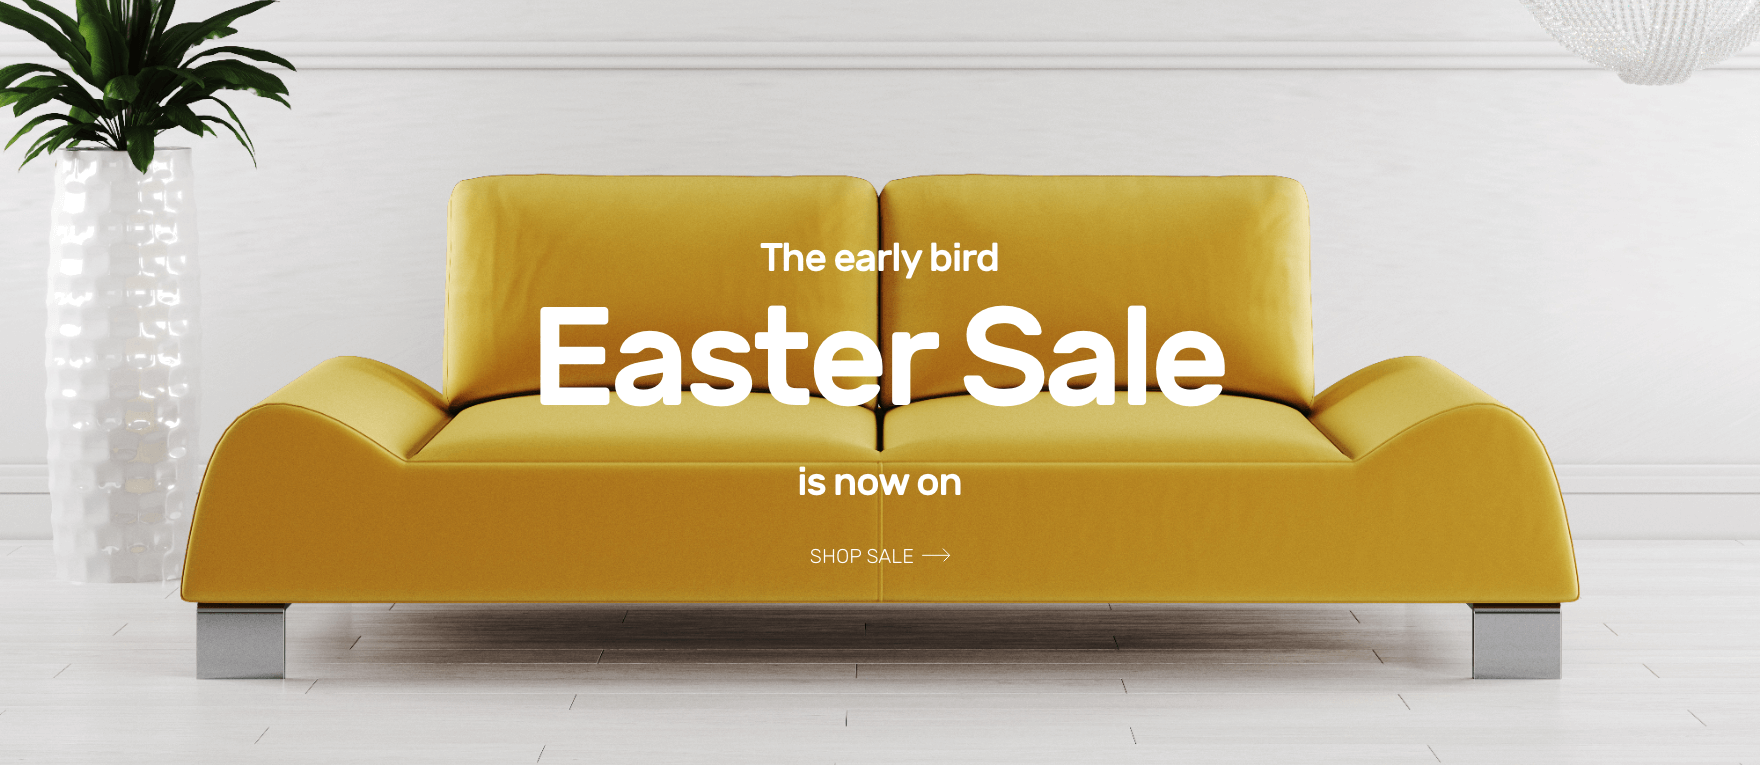 Easter Sale Extended - Shop Now